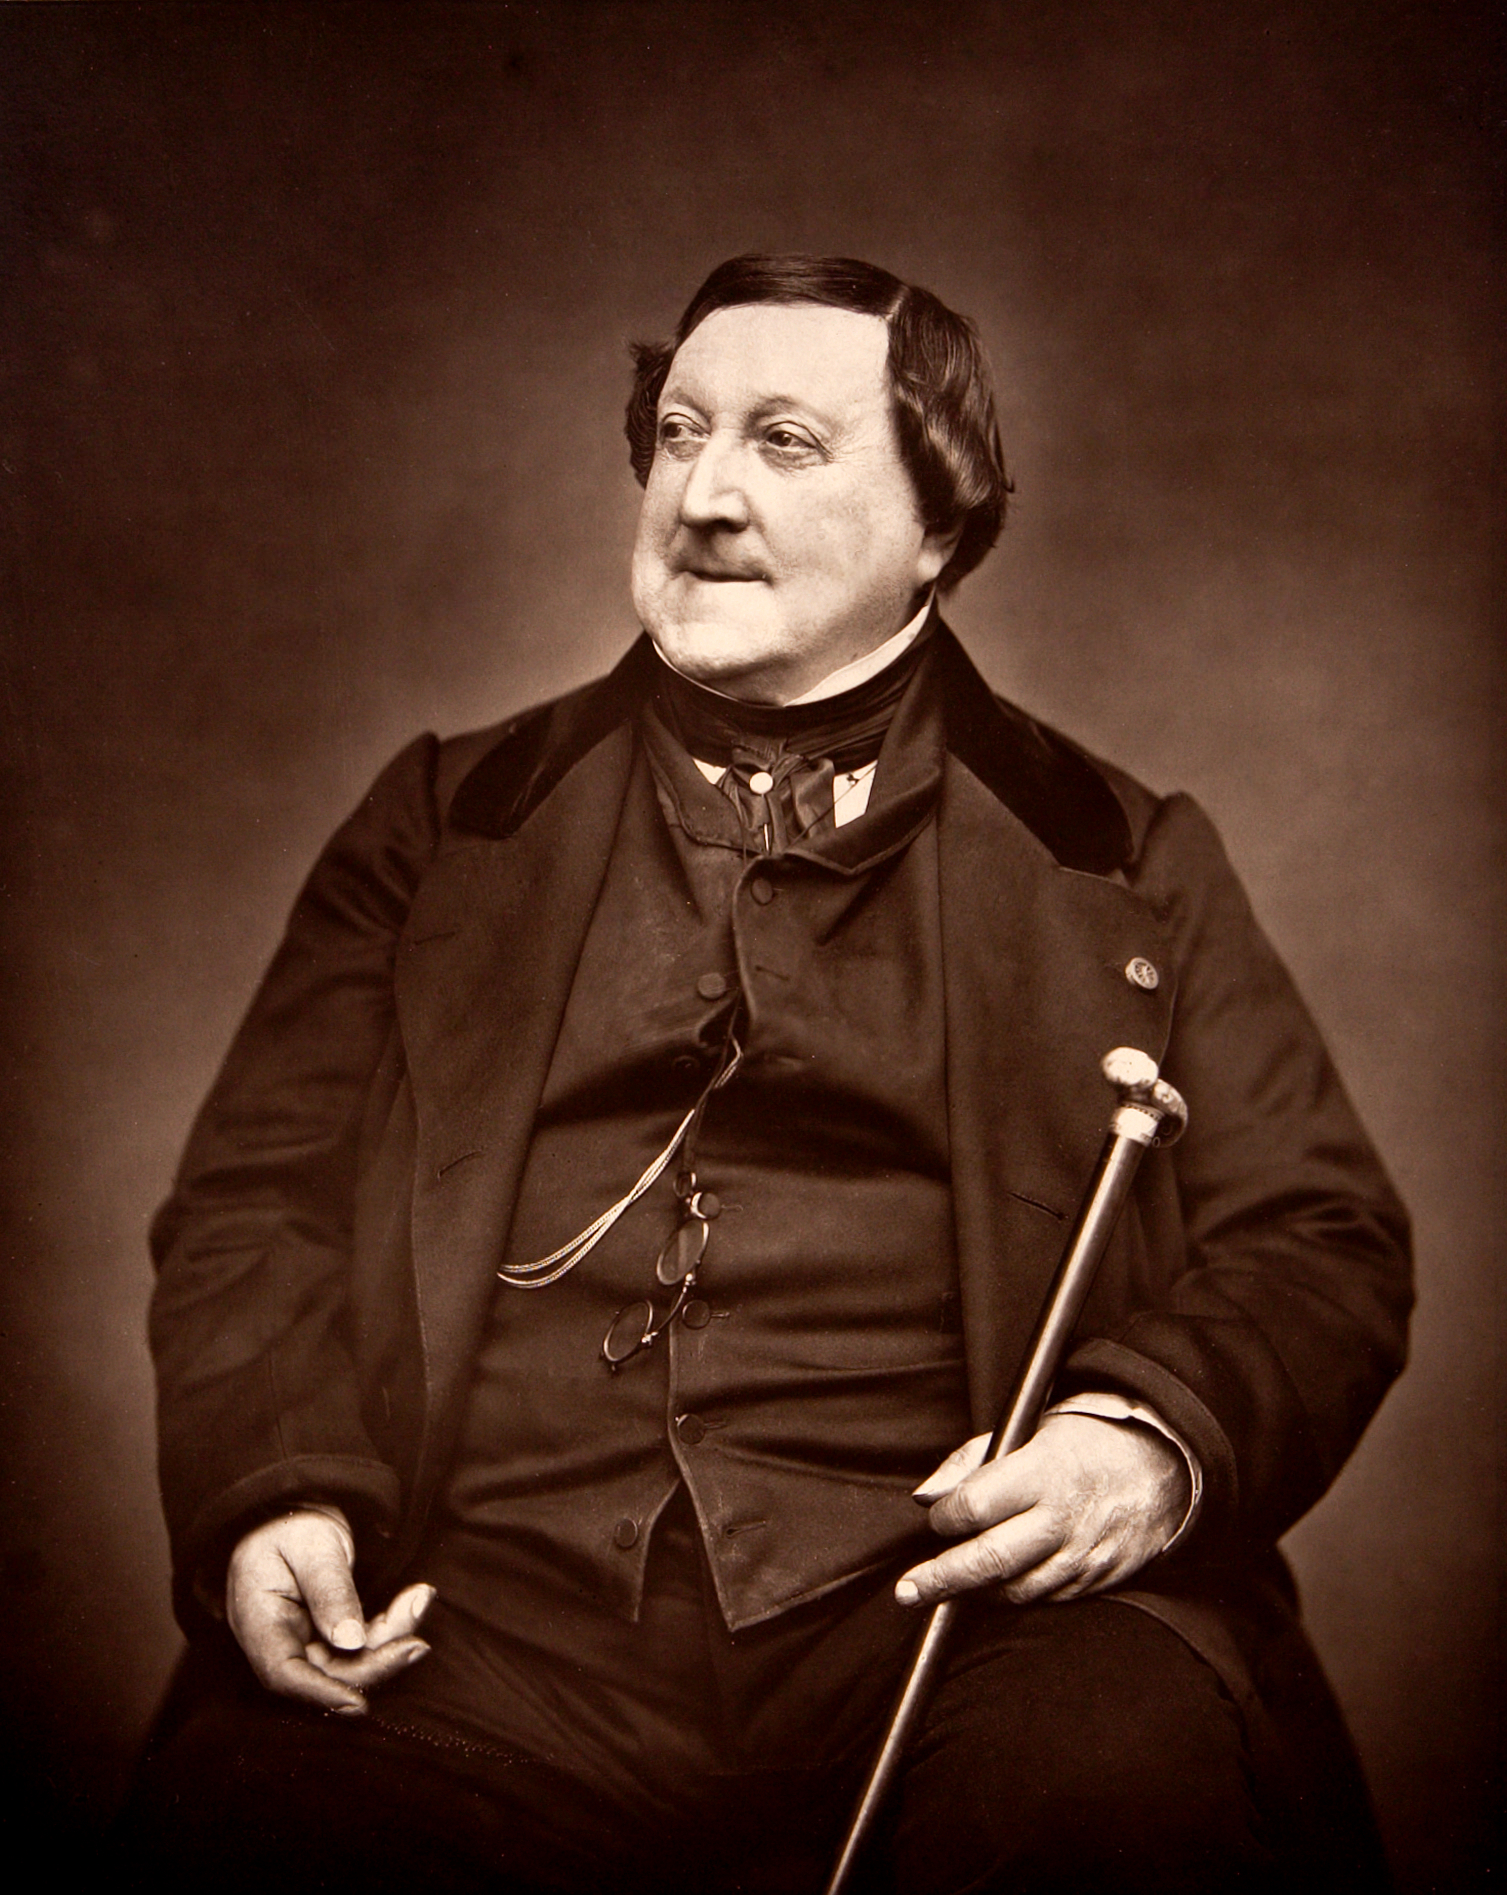 Файл:Composer Rossini G 1865 by Carjat.jpg